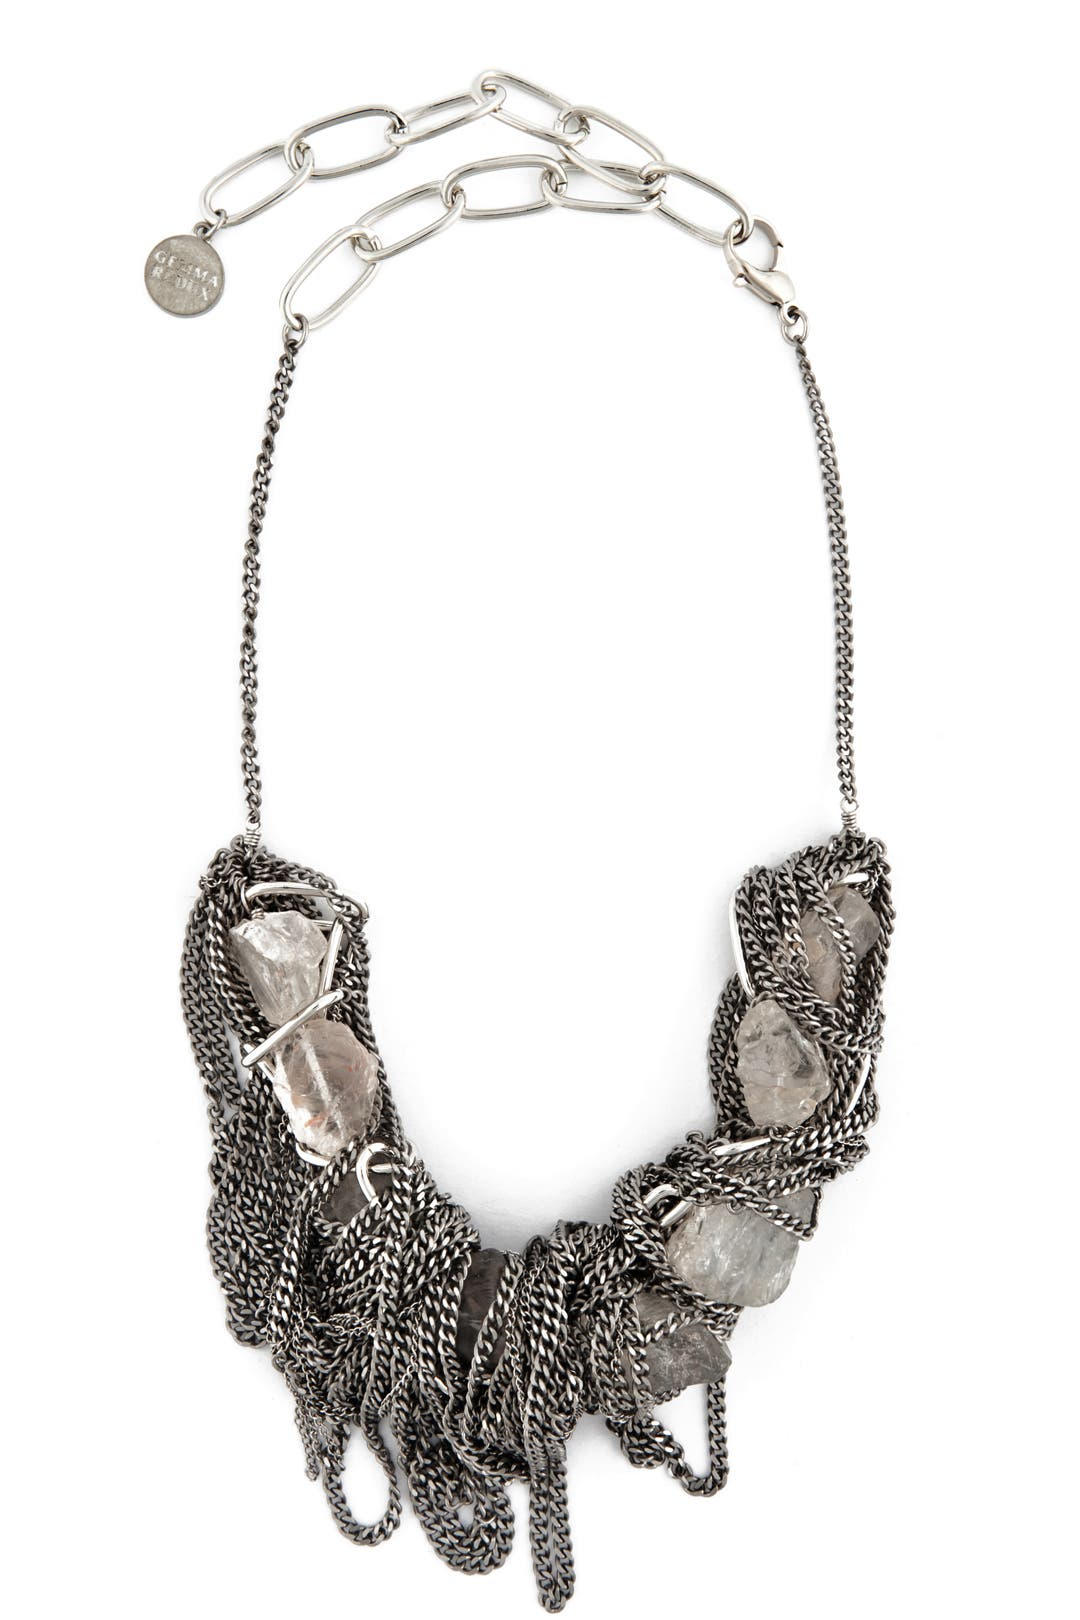 Liz Rough Rock Necklace by Gemma Redux